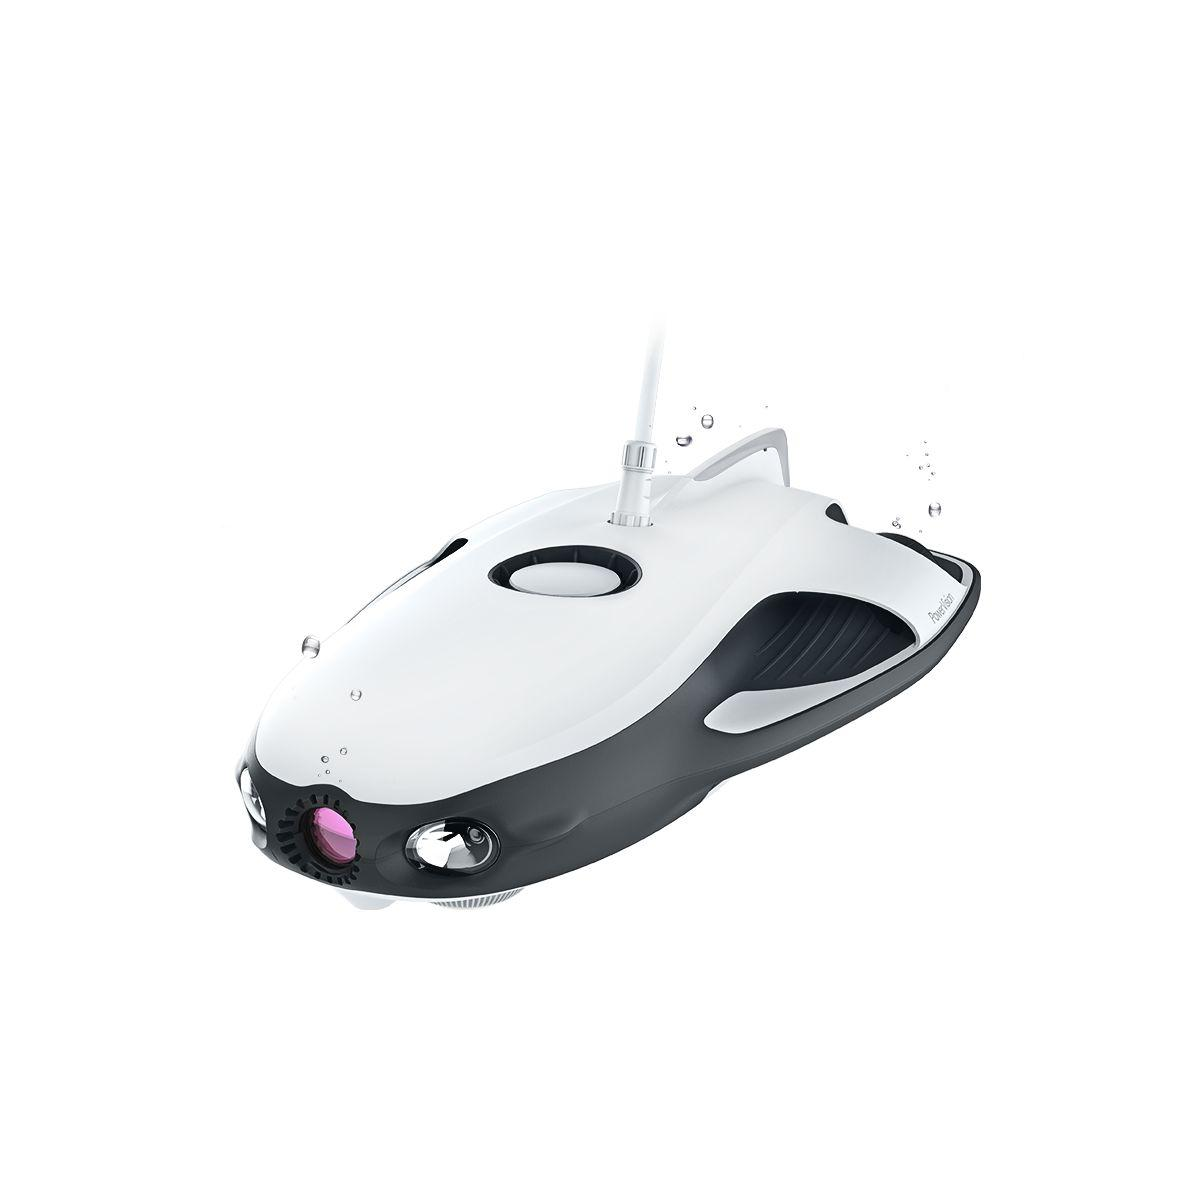 Drones powervision powerray explorer - 10% de remise imm�diate avec le code : noel10 (photo)